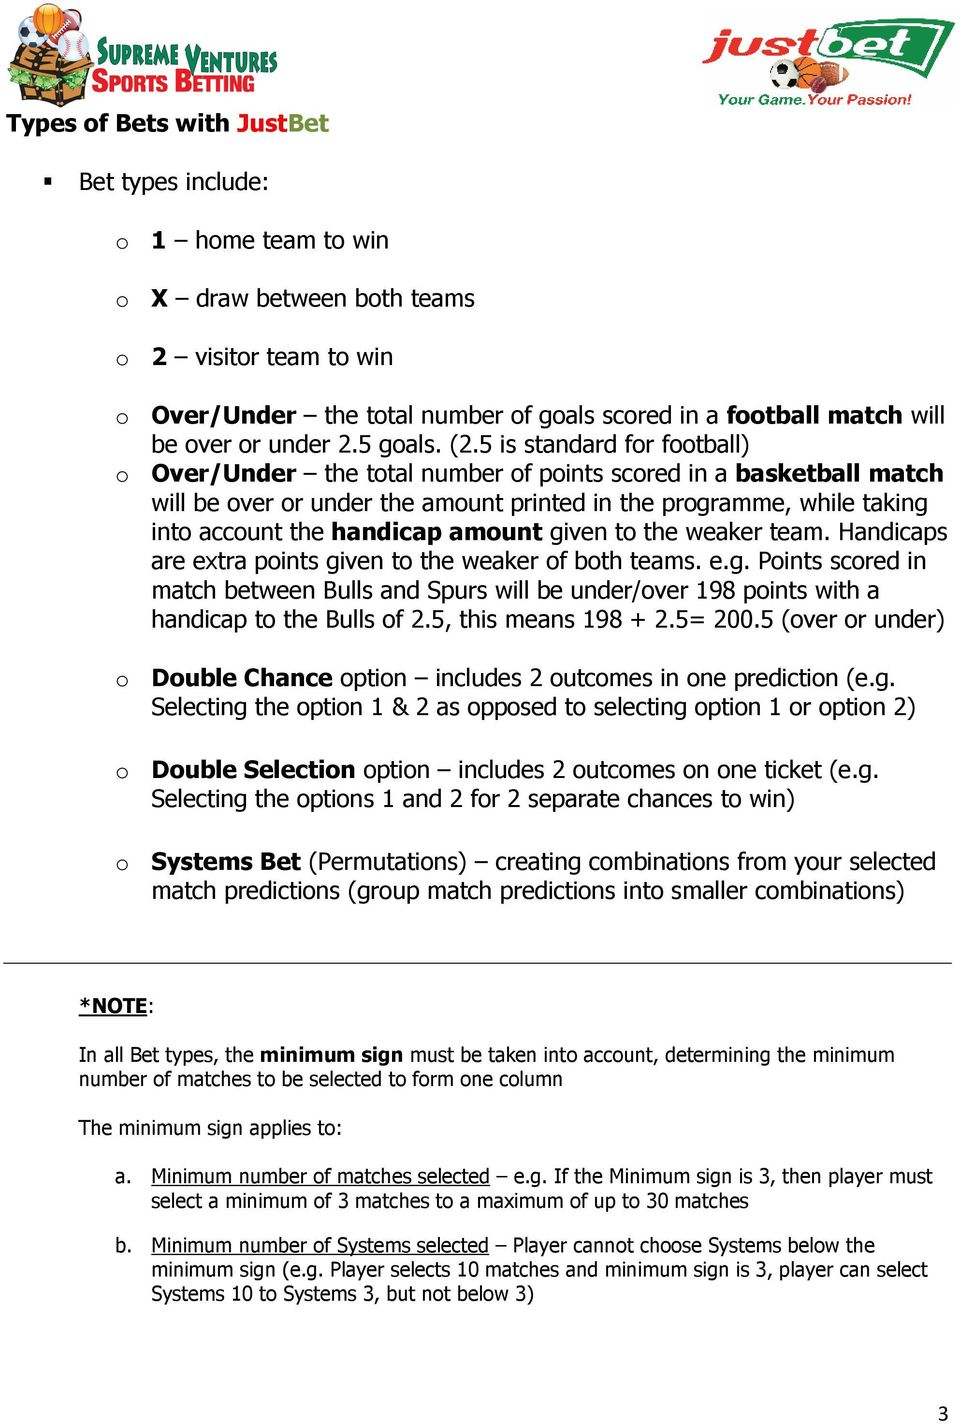 5 is standard for football) o Over/Under the total number of points scored in a basketball match will be over or under the amount printed in the programme, while taking into account the handicap